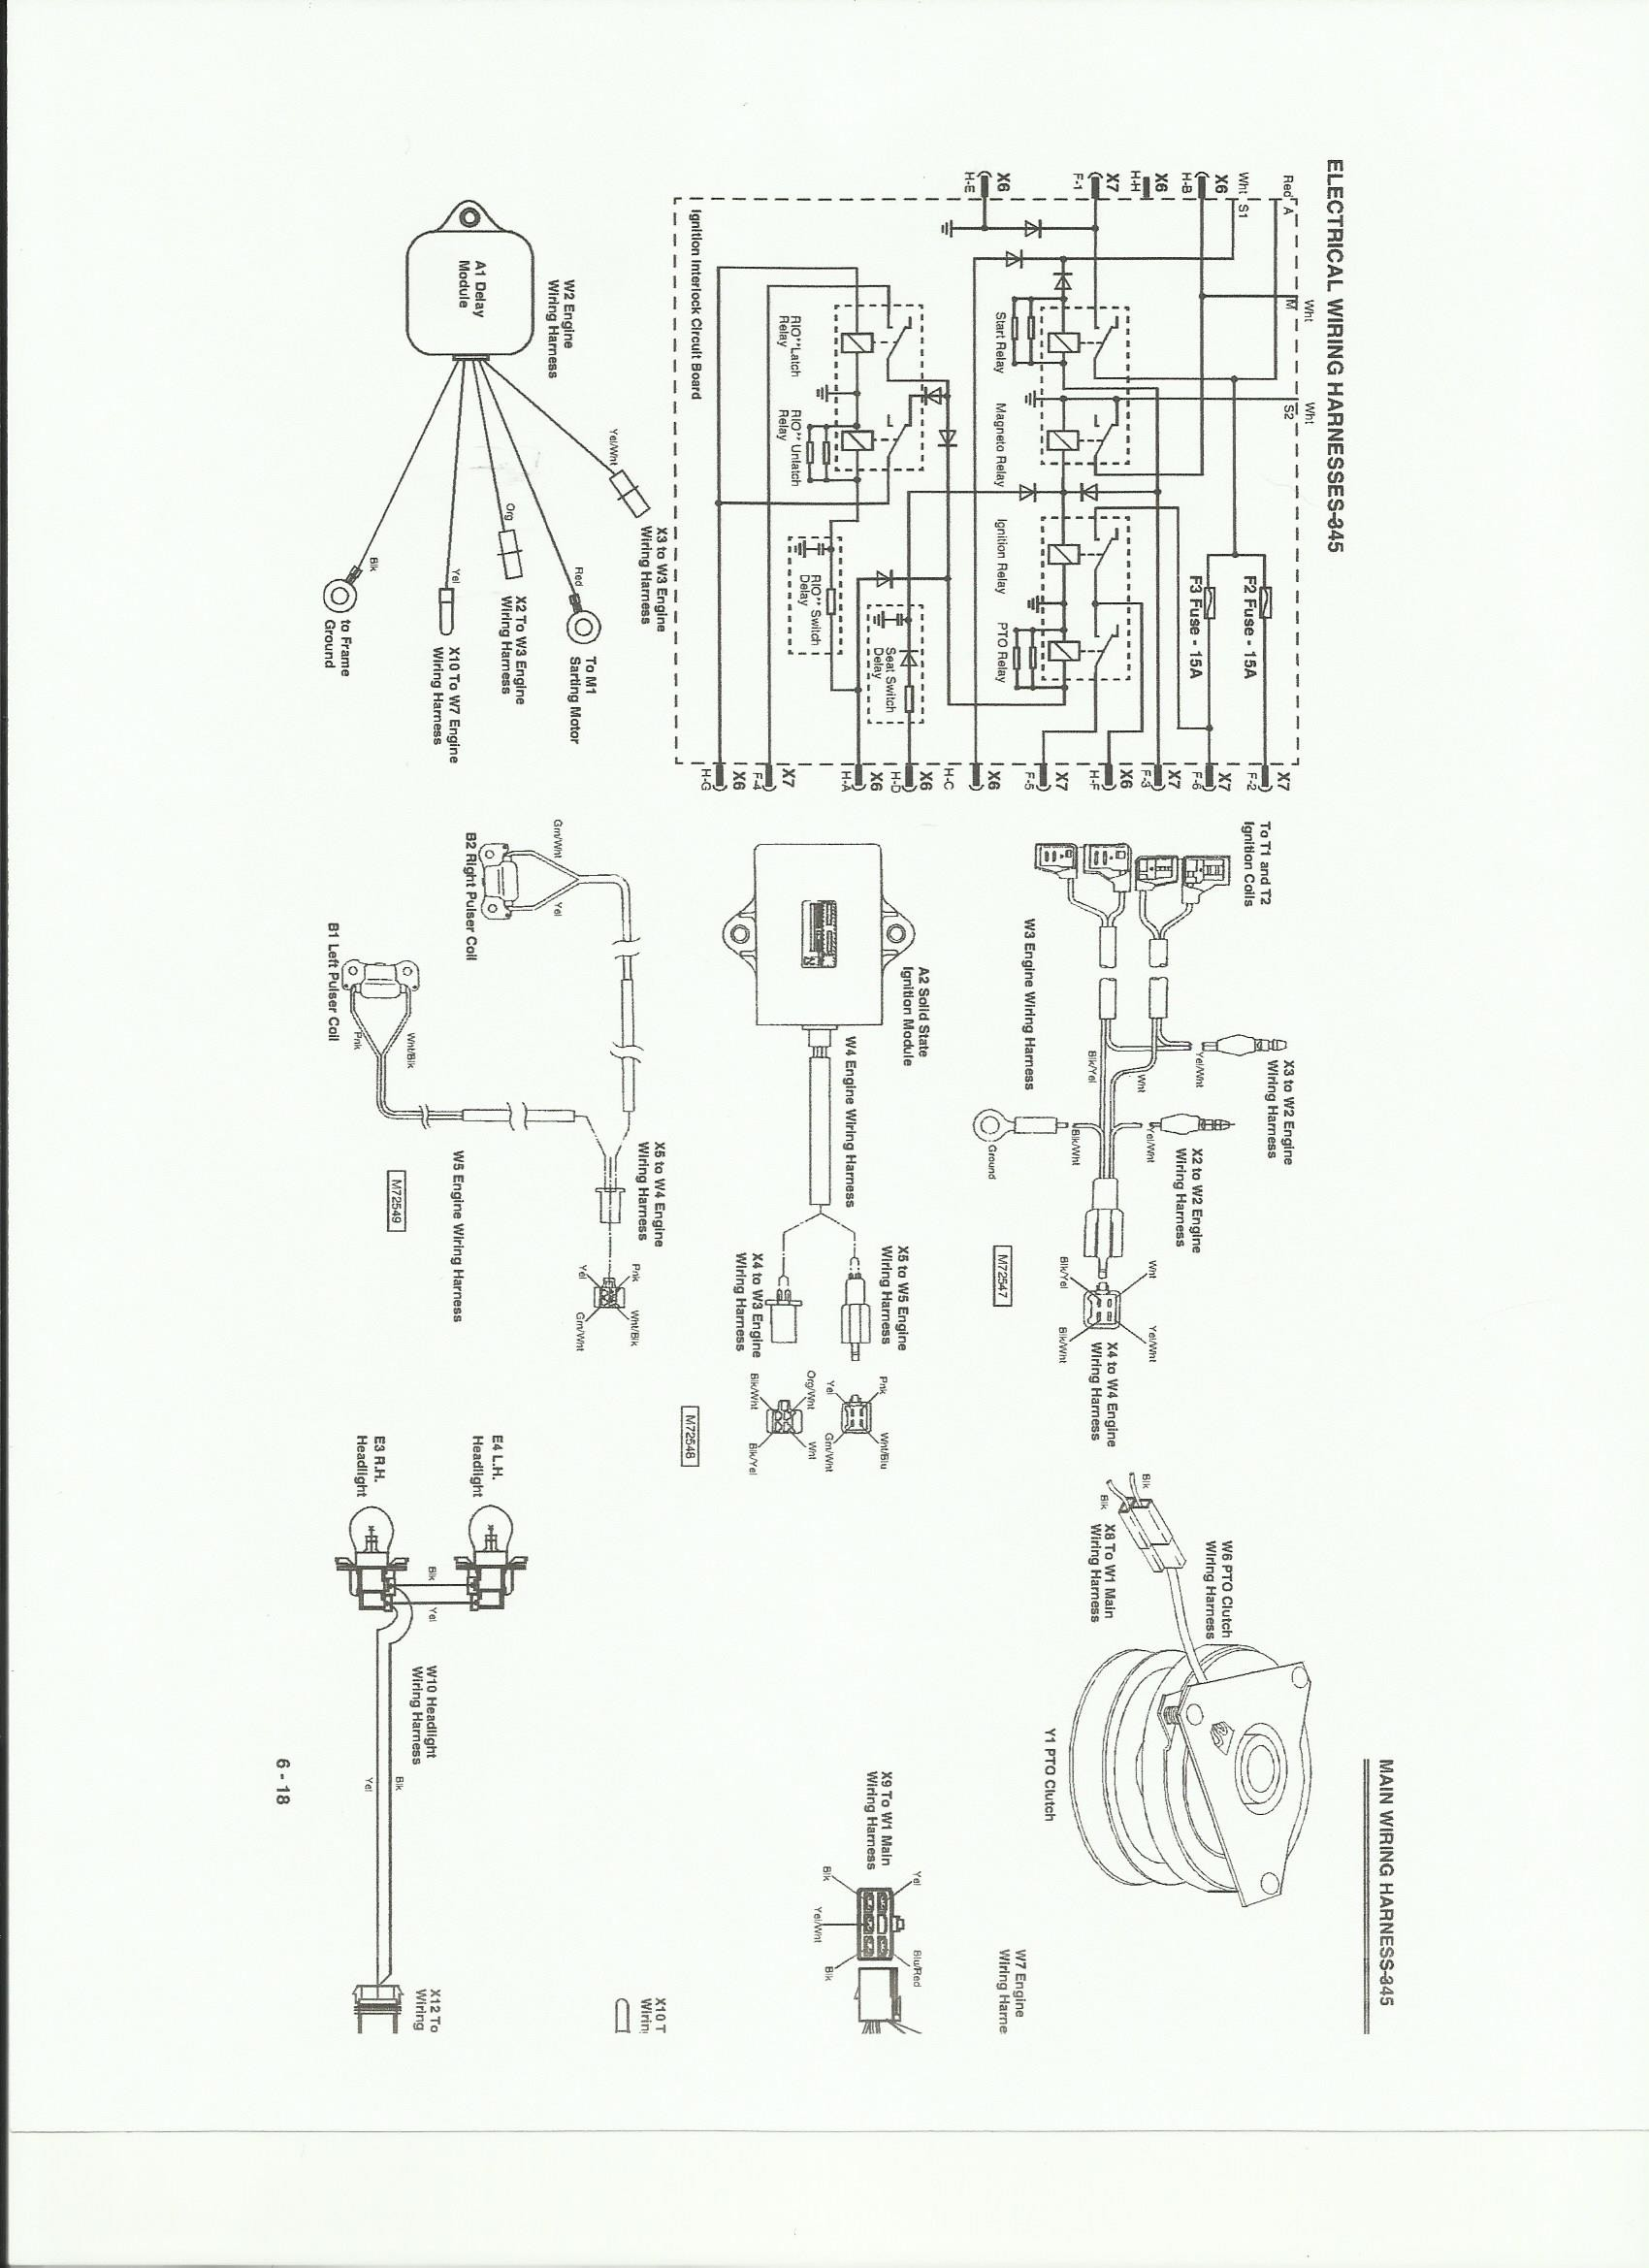 Electrical Scheme for A John Deere Gx345 Need A 345 Wiring Diagram Pdf Please Of Electrical Scheme for A John Deere Gx345